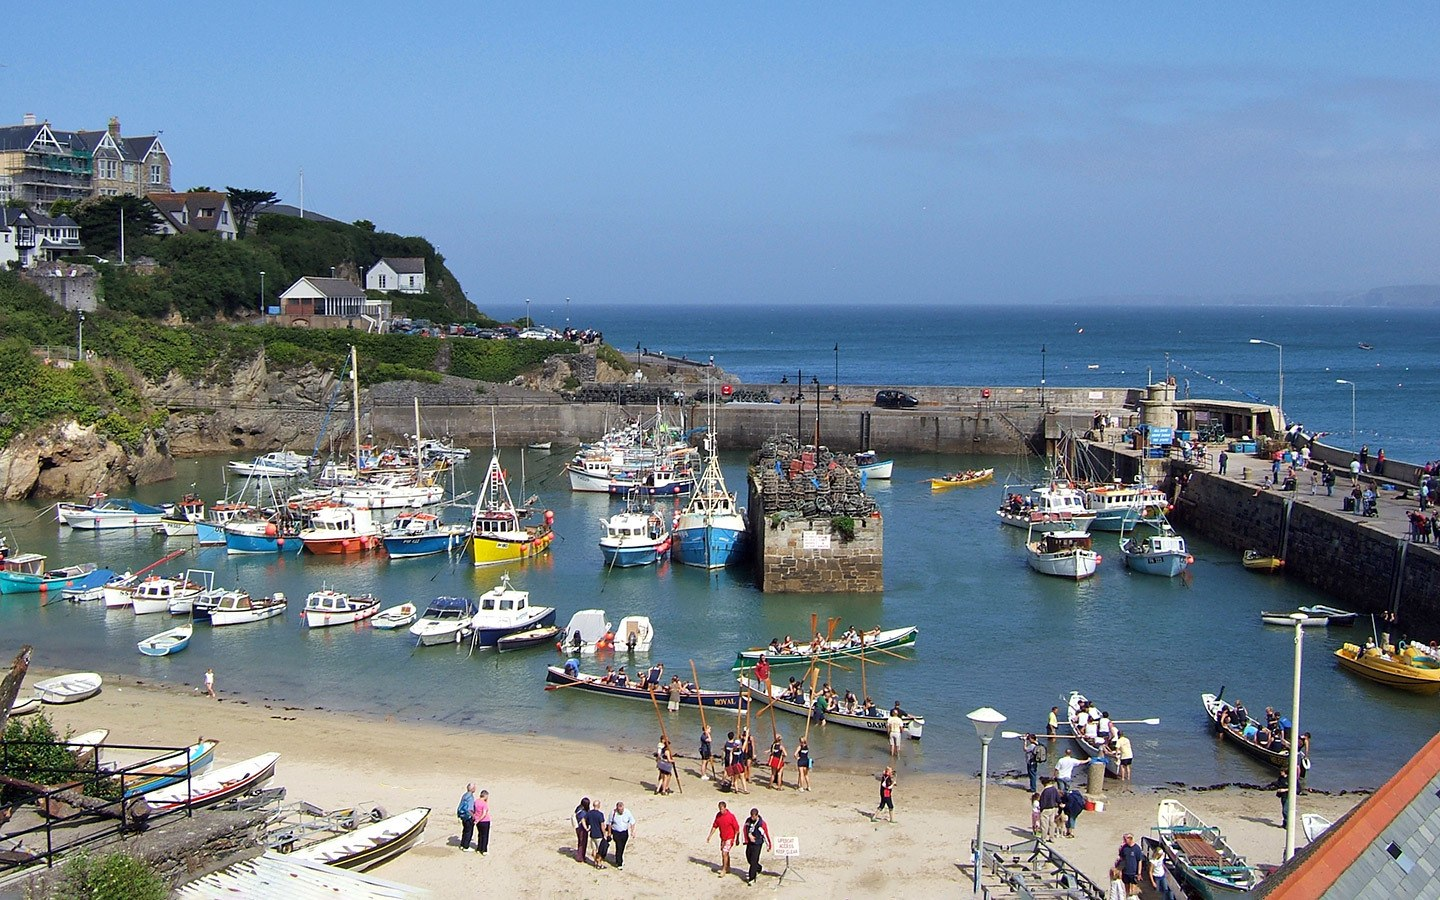 Boats in the harbour in Newquay, Cornwall